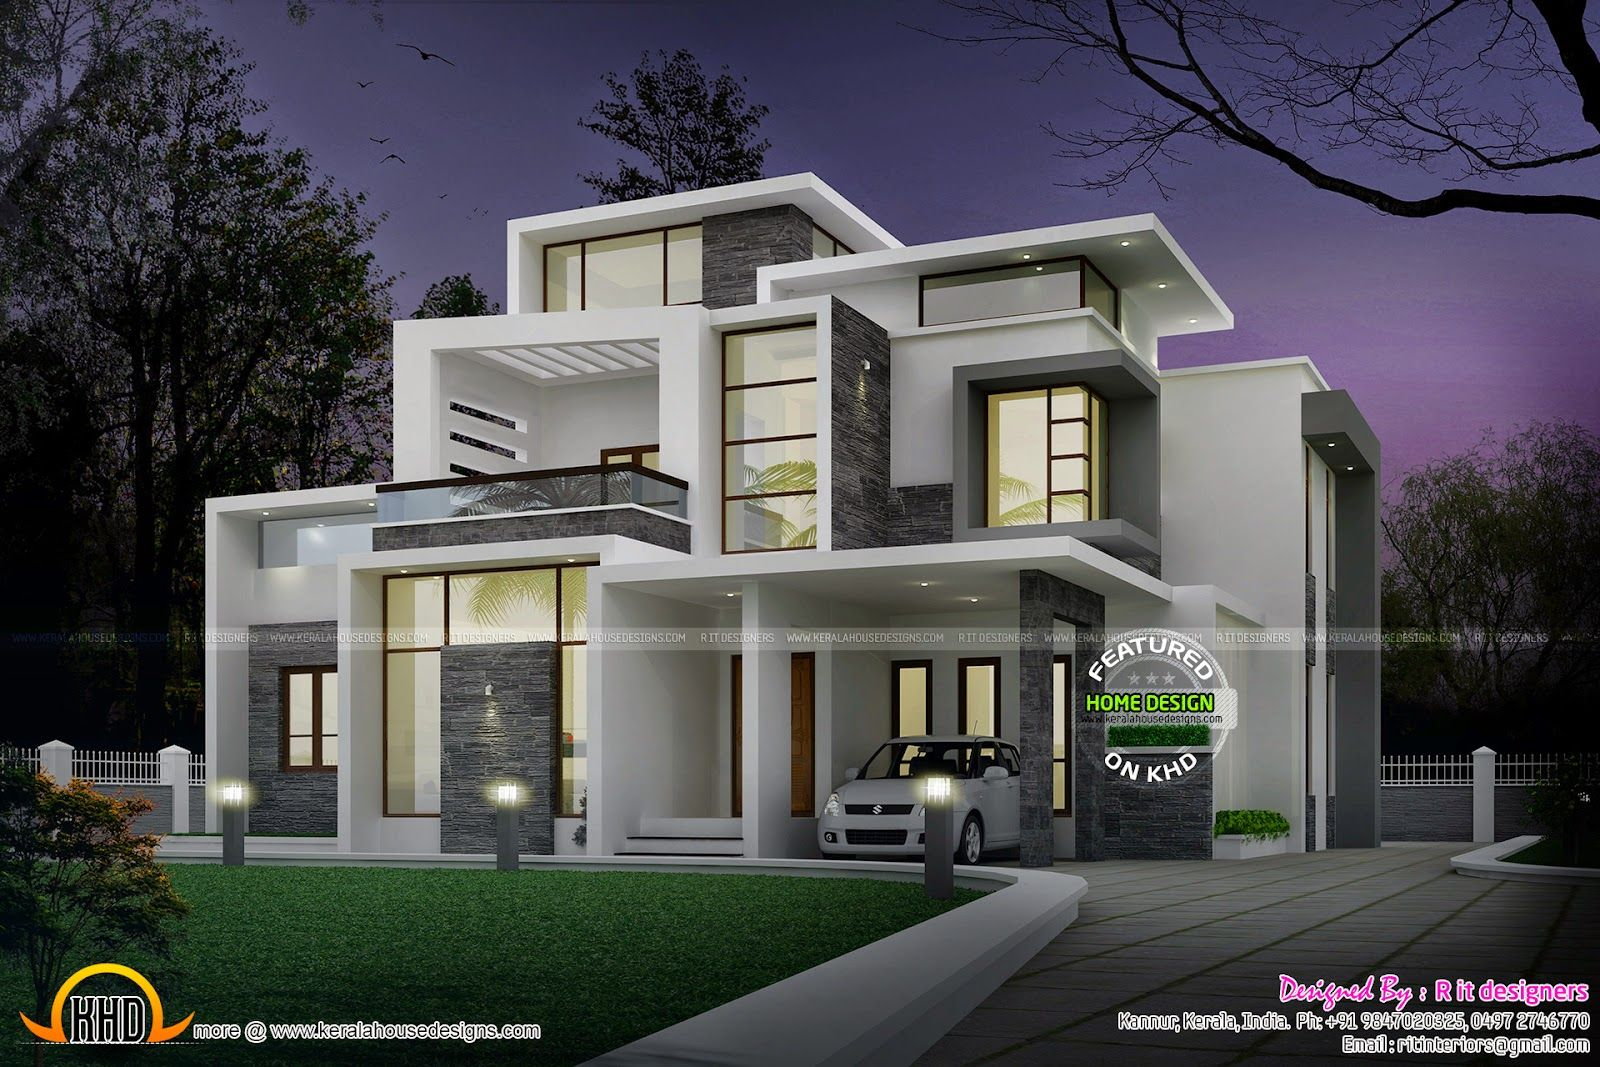 Grand contemporary home design kerala home design and for Design home modern